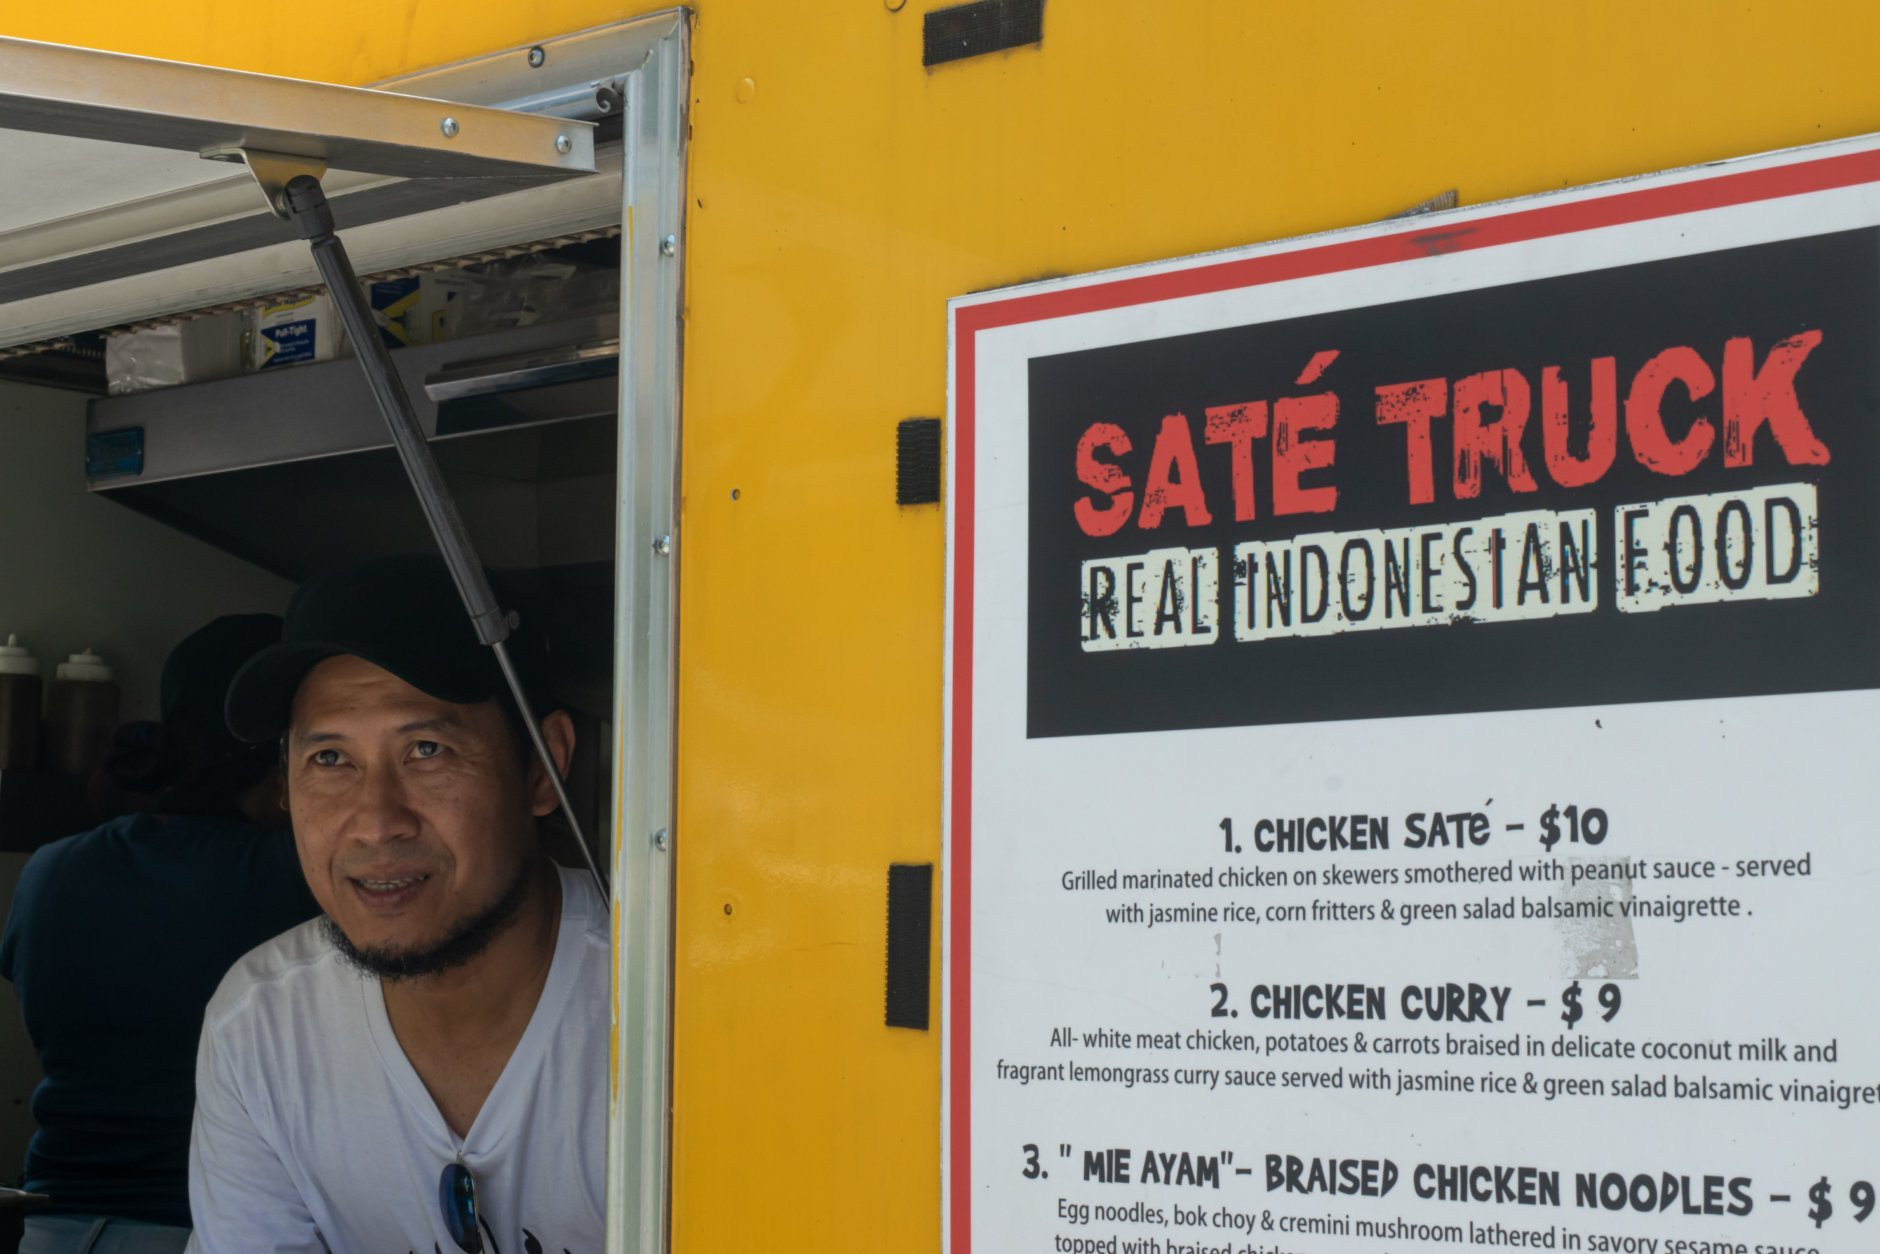 "<p><span style=""font-weight: 400;"">On the corner of 17th and K Streets NW, Sonny Setiantoko fills orders from the window of his food truck for spicy beef curry rendang, corn fritters and braised chicken noodles </span><span style=""font-weight: 400;"">—</span><span style=""font-weight: 400;""> all dishes from his native city of Jakarta. </span></p>"